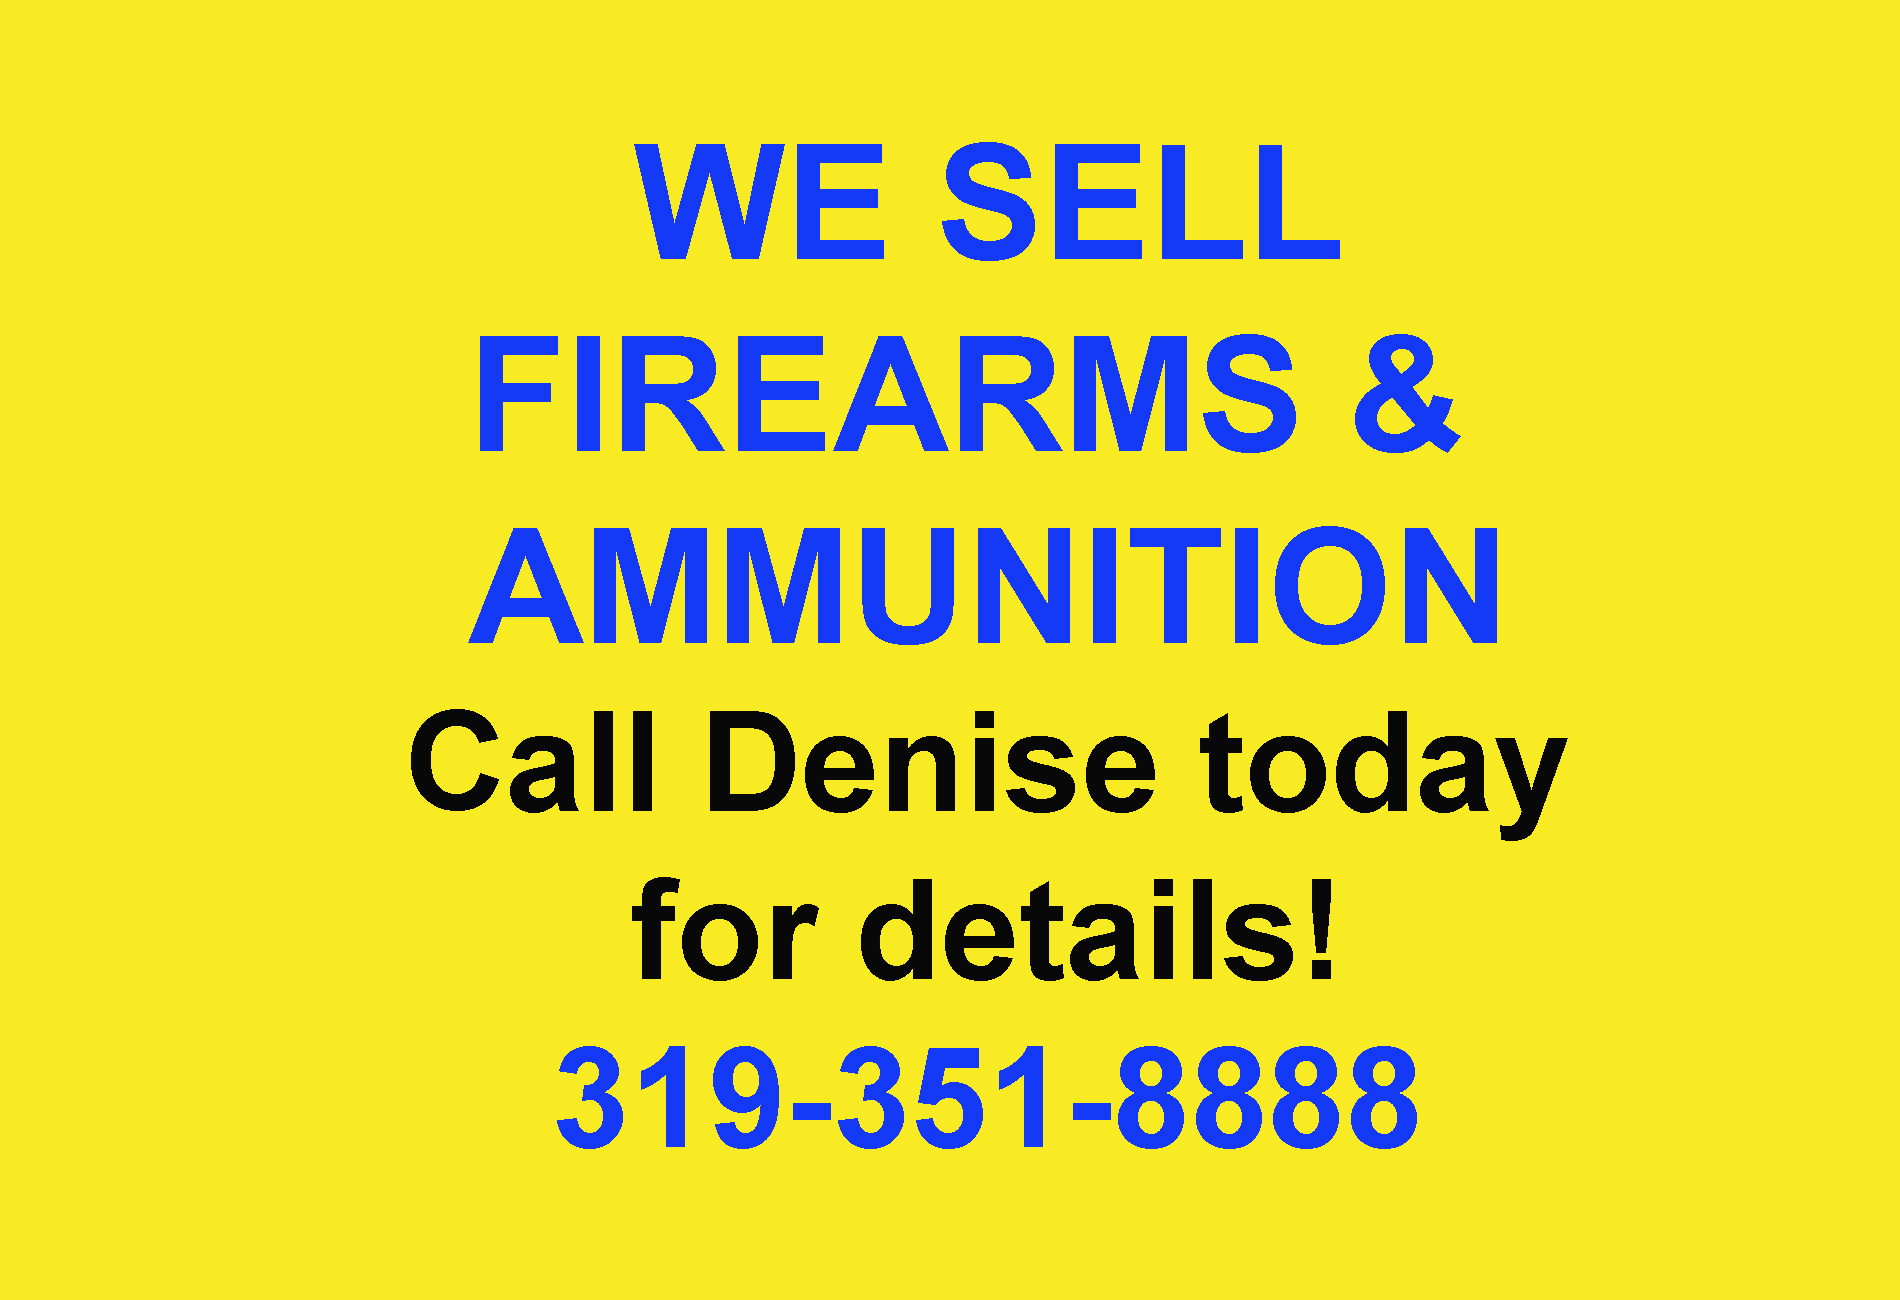 WE SELL FIREARMS AND AMMUNITION